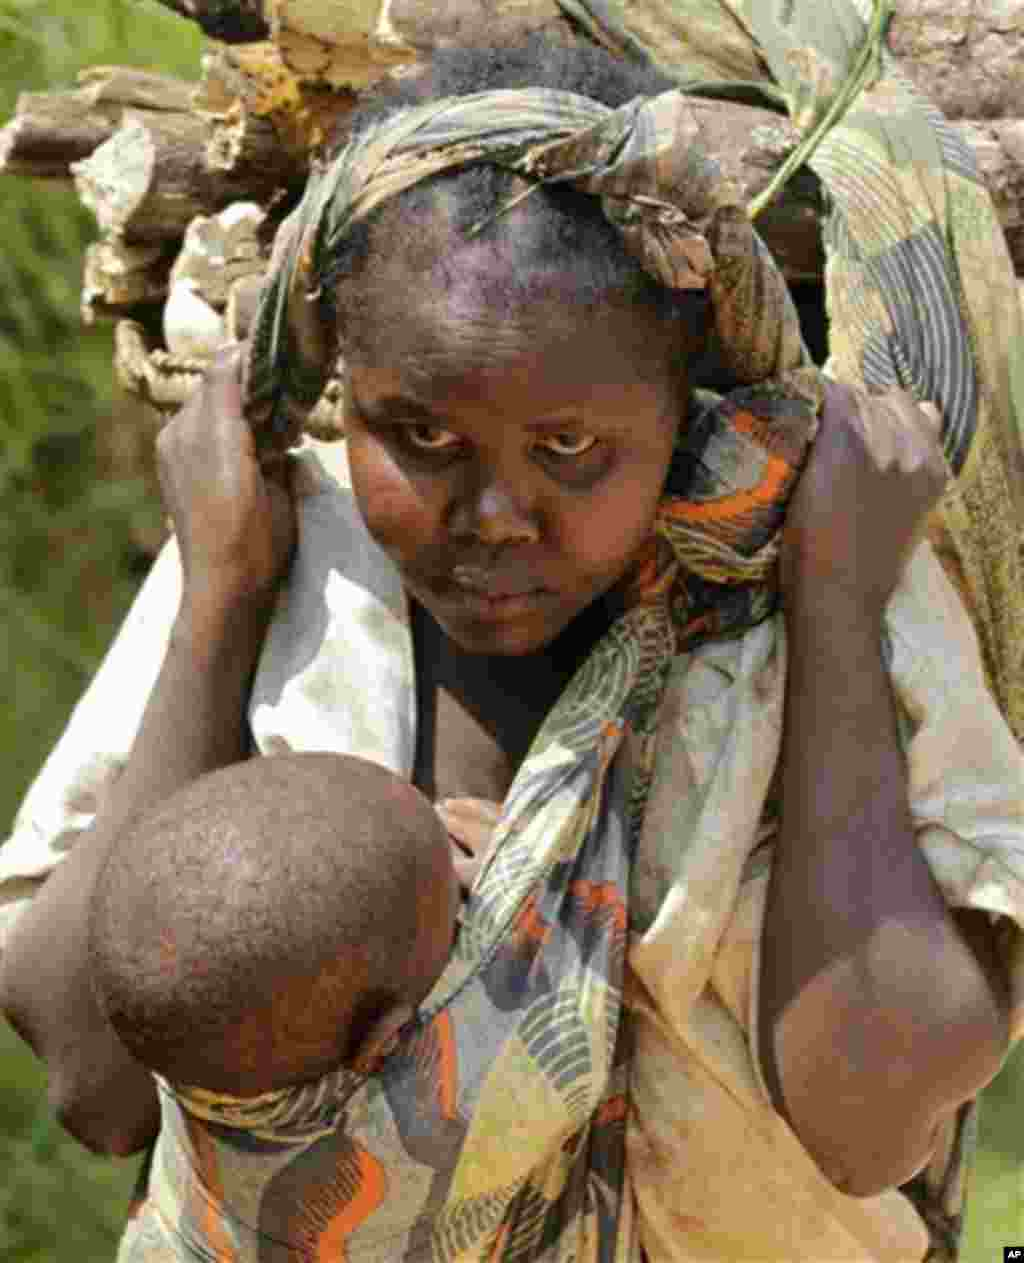 A woman carries a child and food stuff on a main road outside the small village of Walikale, Congo, Thursday, Sept. 16, 2010. According to aid workers, crimes like rape have been used as a brutal weapon of war in Congo, where conflicts based on tribal li